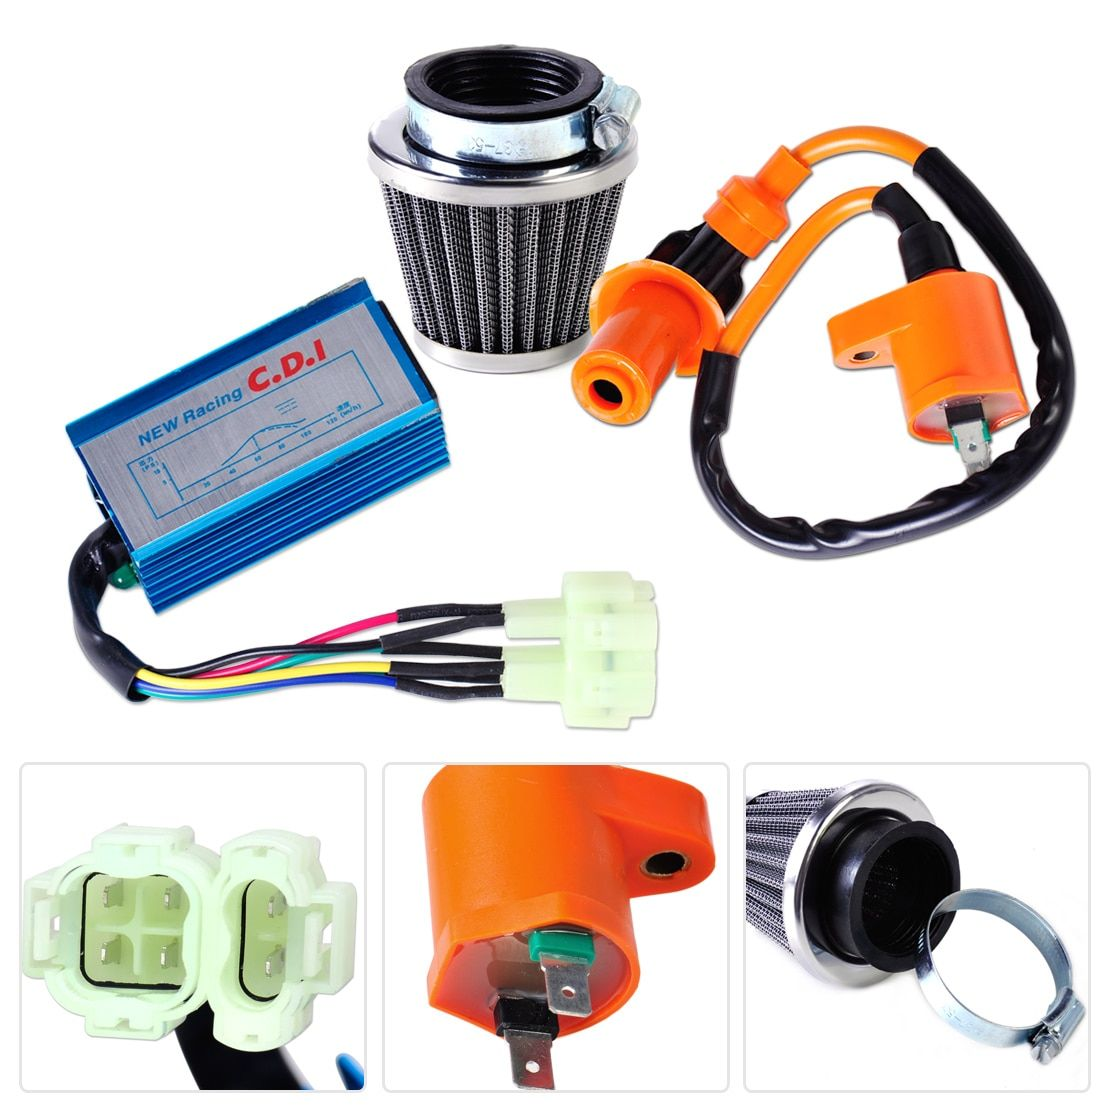 DWCX Motorrad Racing Performance Zündspule + CDI Box + Luftfilter Kit für GY6 50cc 150cc Scooter Moped Go Kart Dirt bike